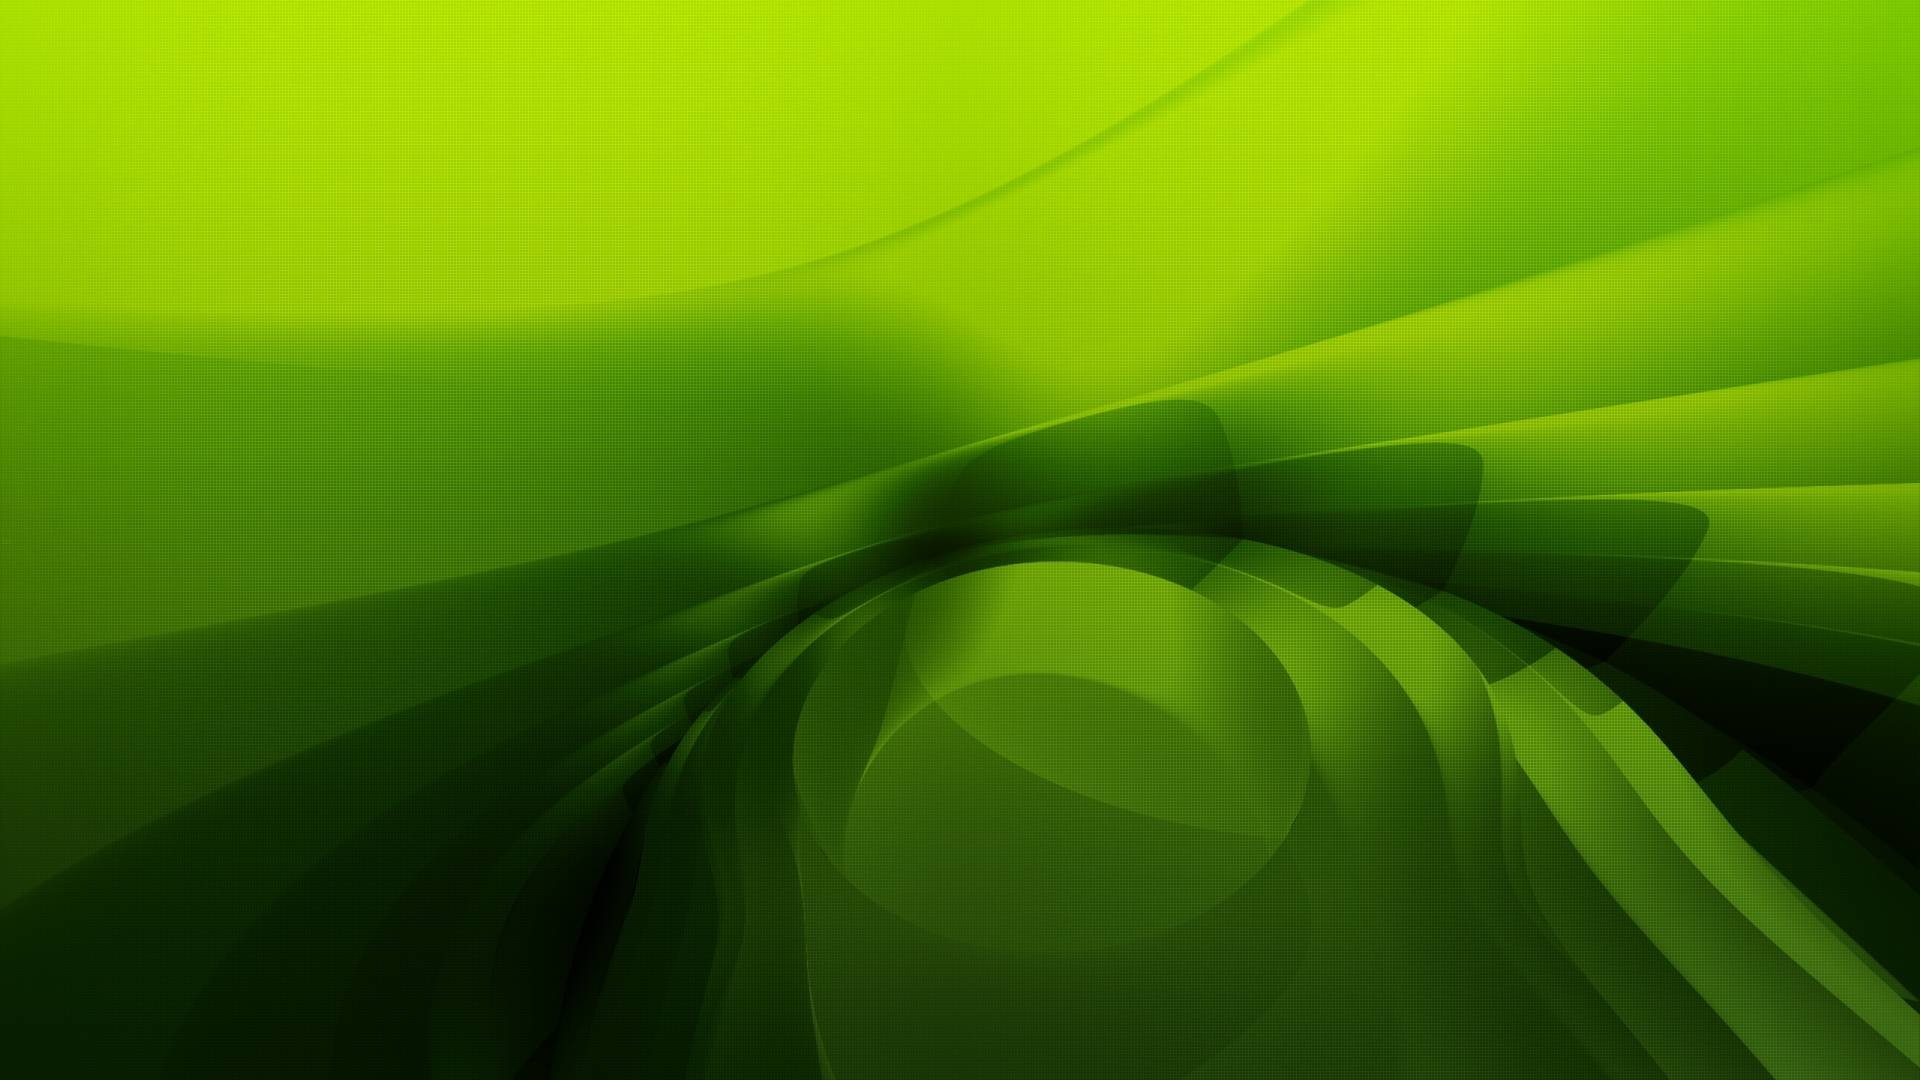 1920x1080 abstract green background 6771